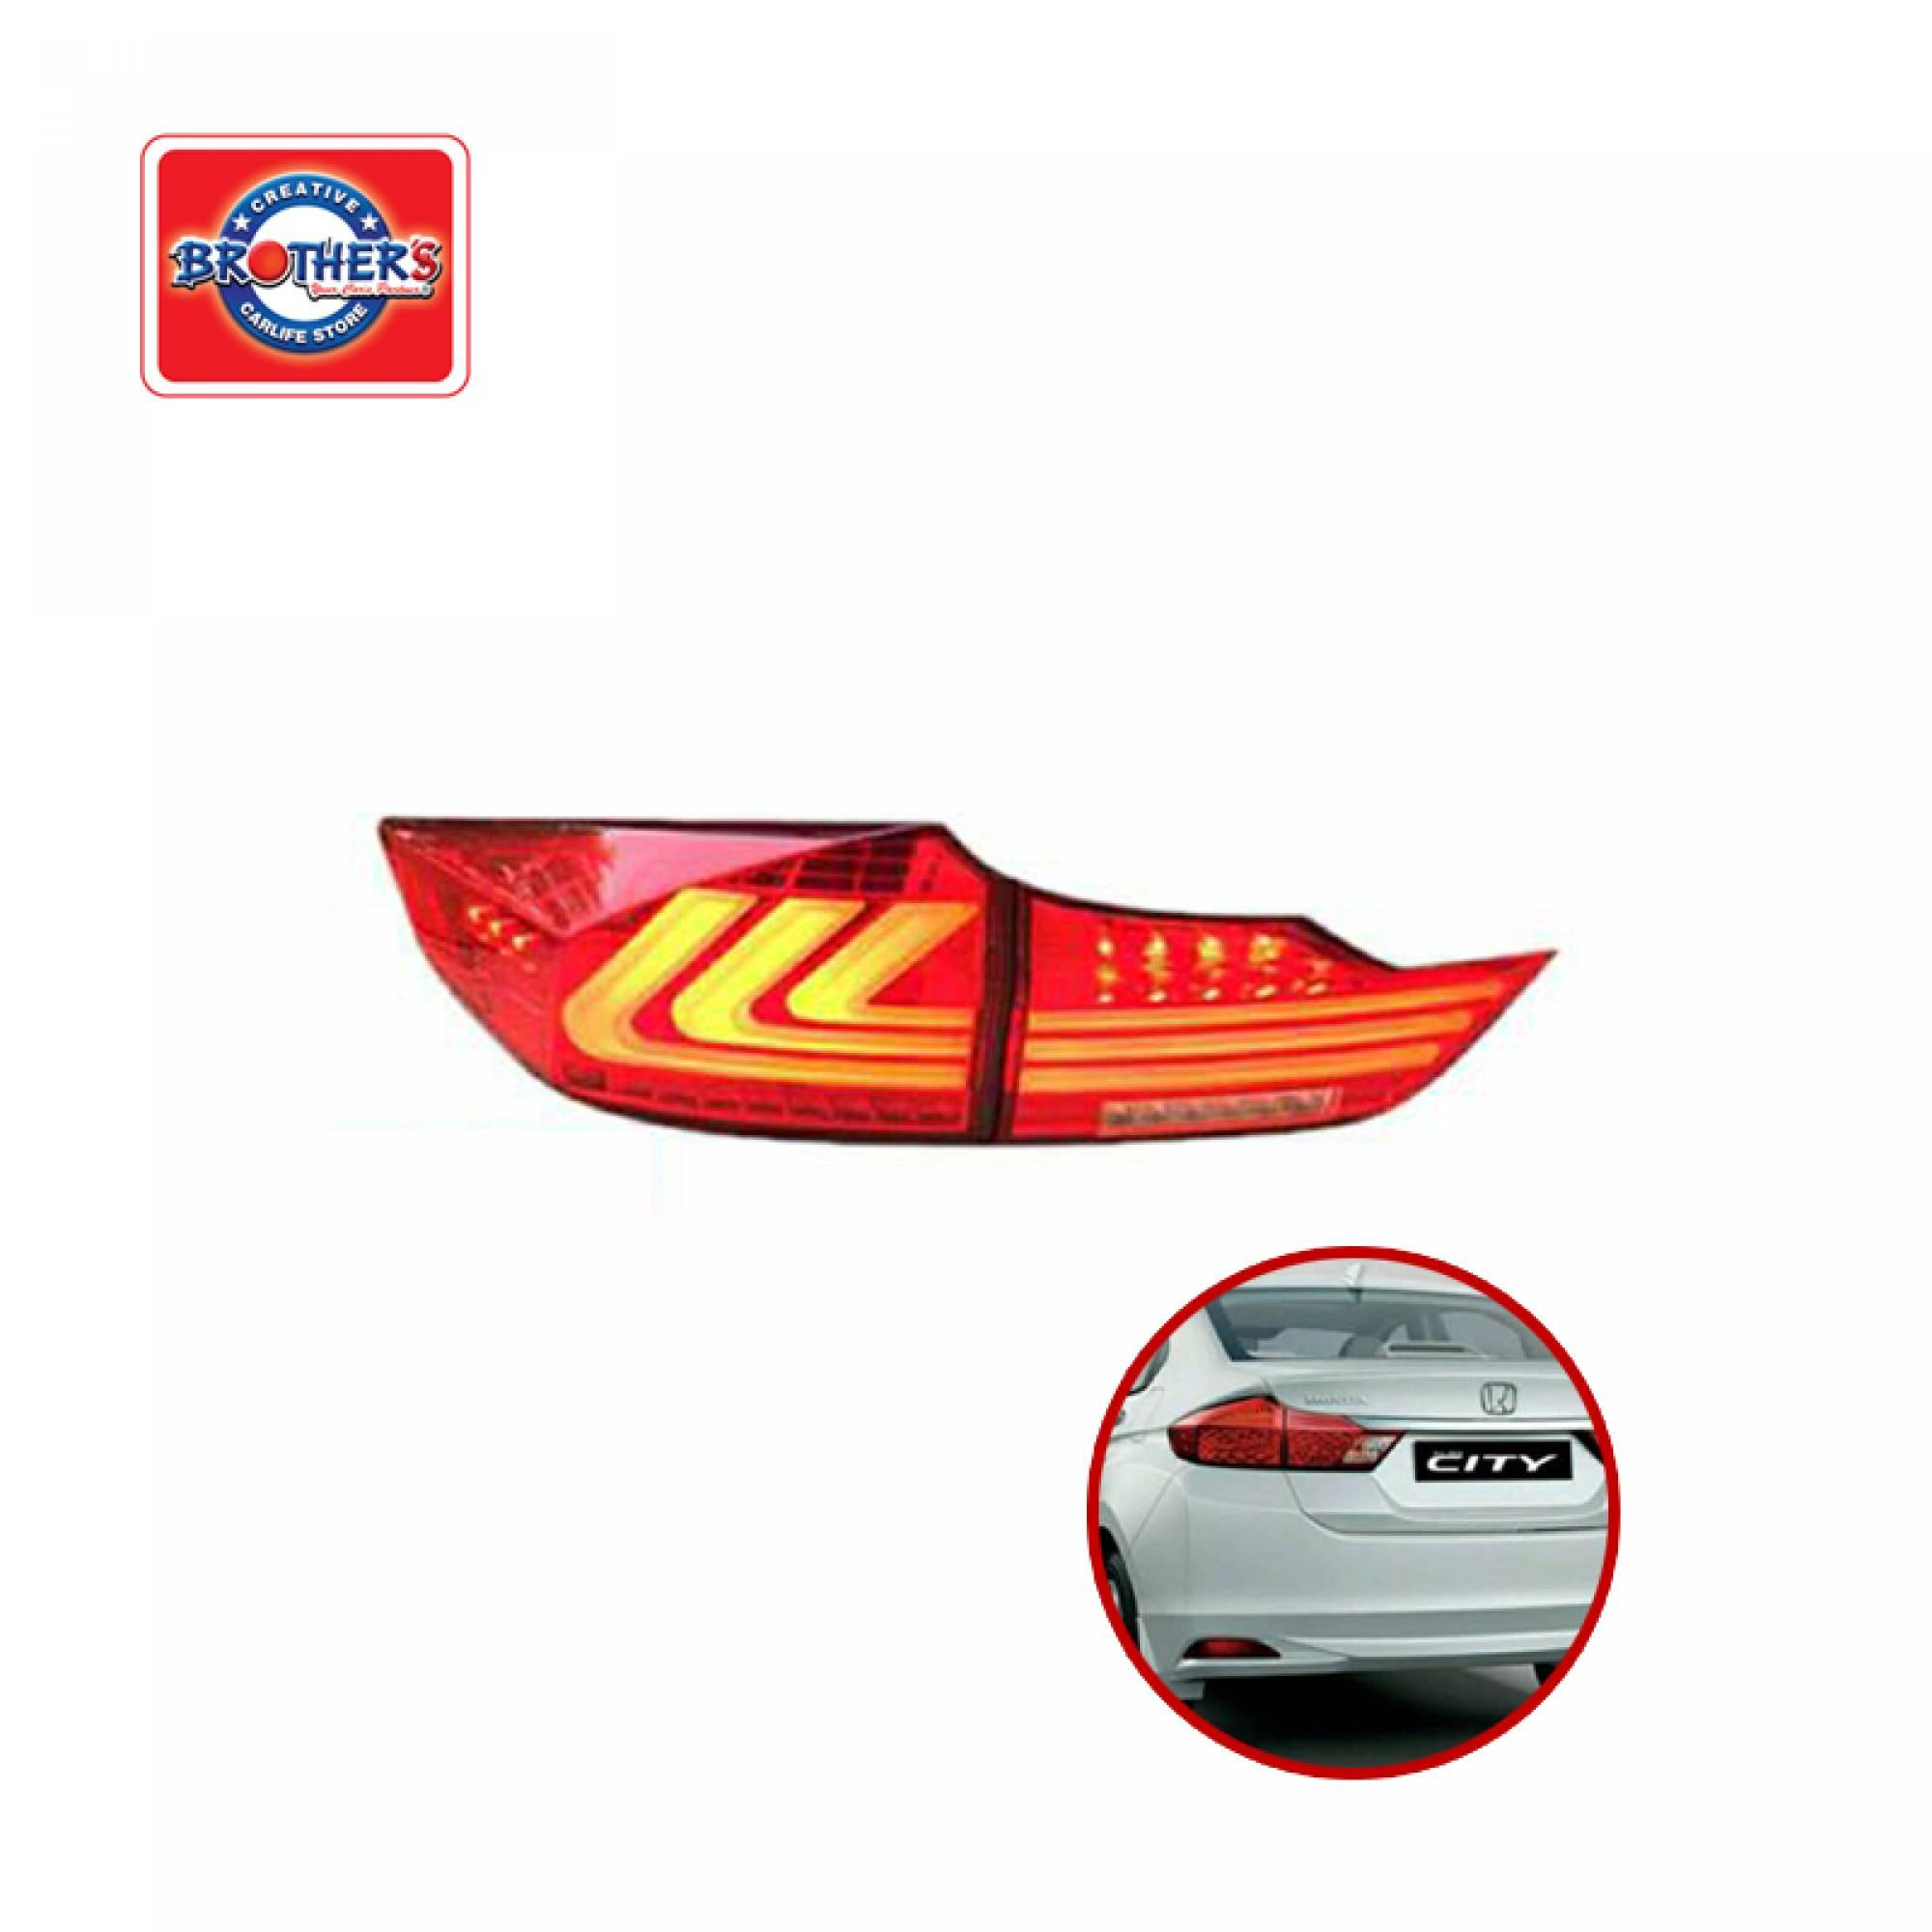 HONDA CITY 2014 LED LIGHT BAR TAIL LAMP | BROTHER\'S FACTORY OUTLET ...